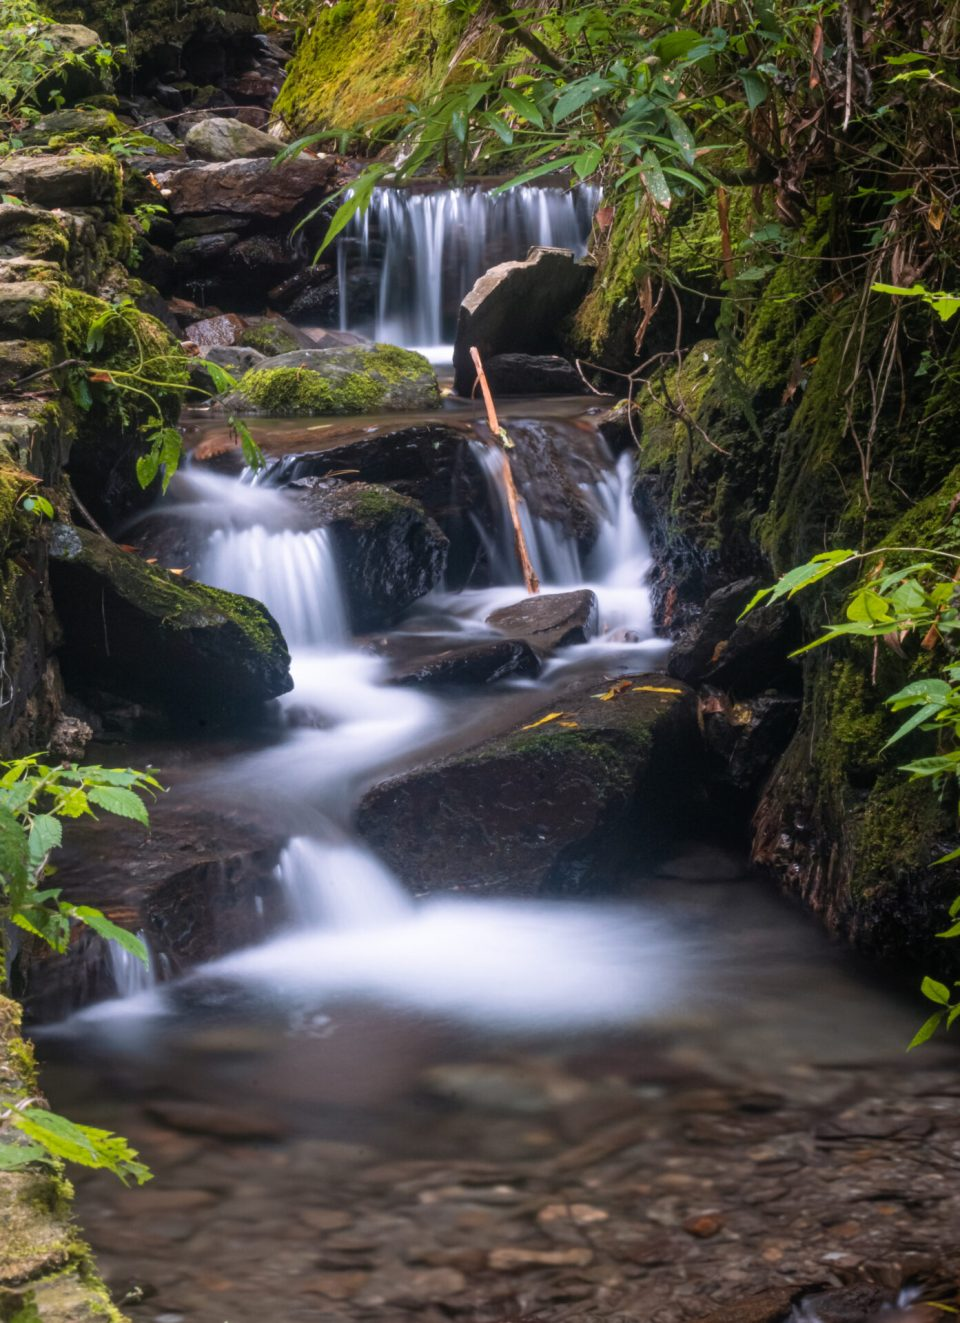 The Stream of the water flowing just near the waterfall - Long exposure shots